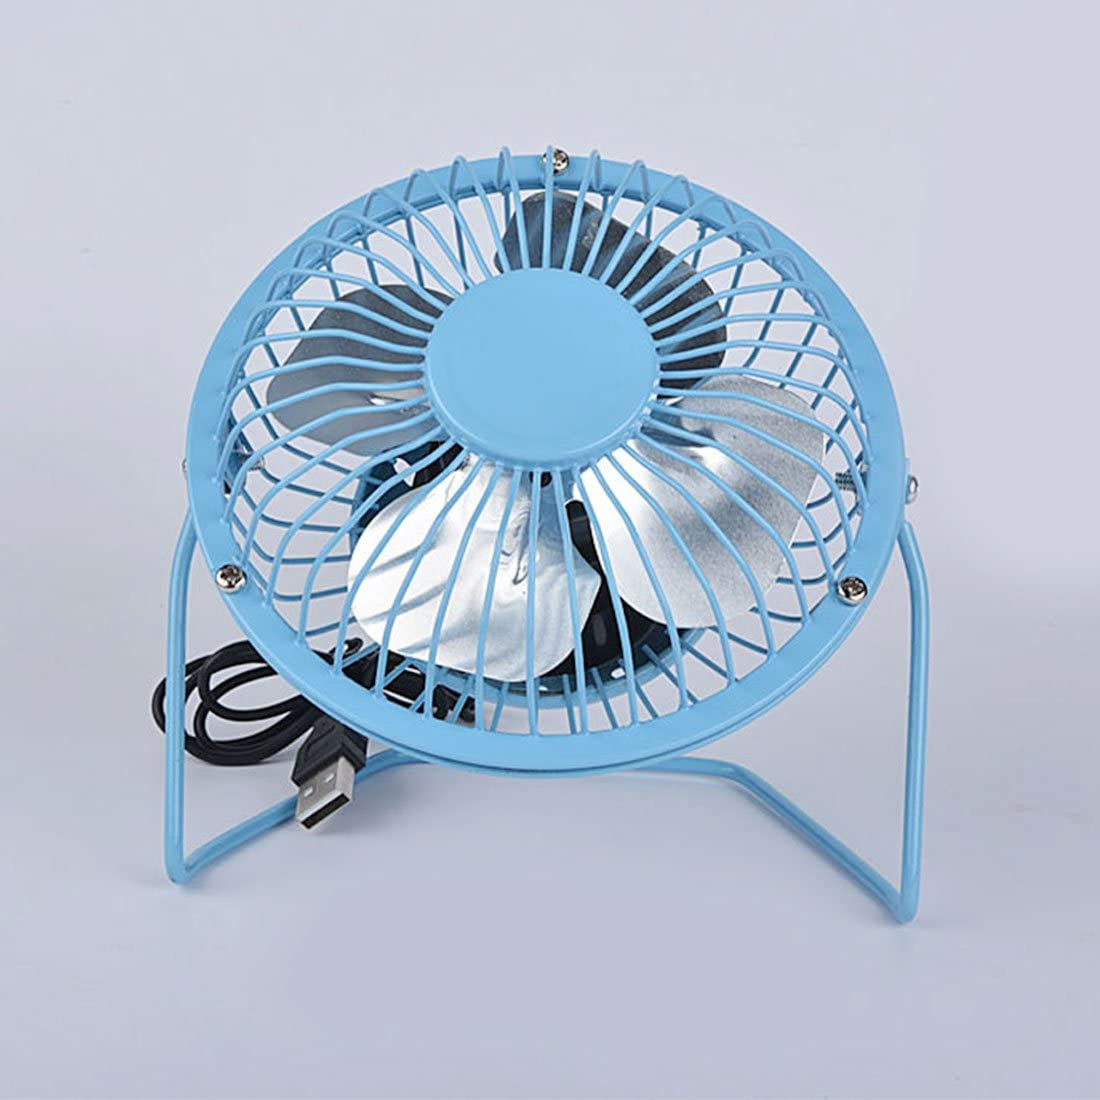 Blue Off Switch 4 inch Mini USB Fan Portable Quiet Metal Desktop Fan Tiltable Compact And Powerful With On